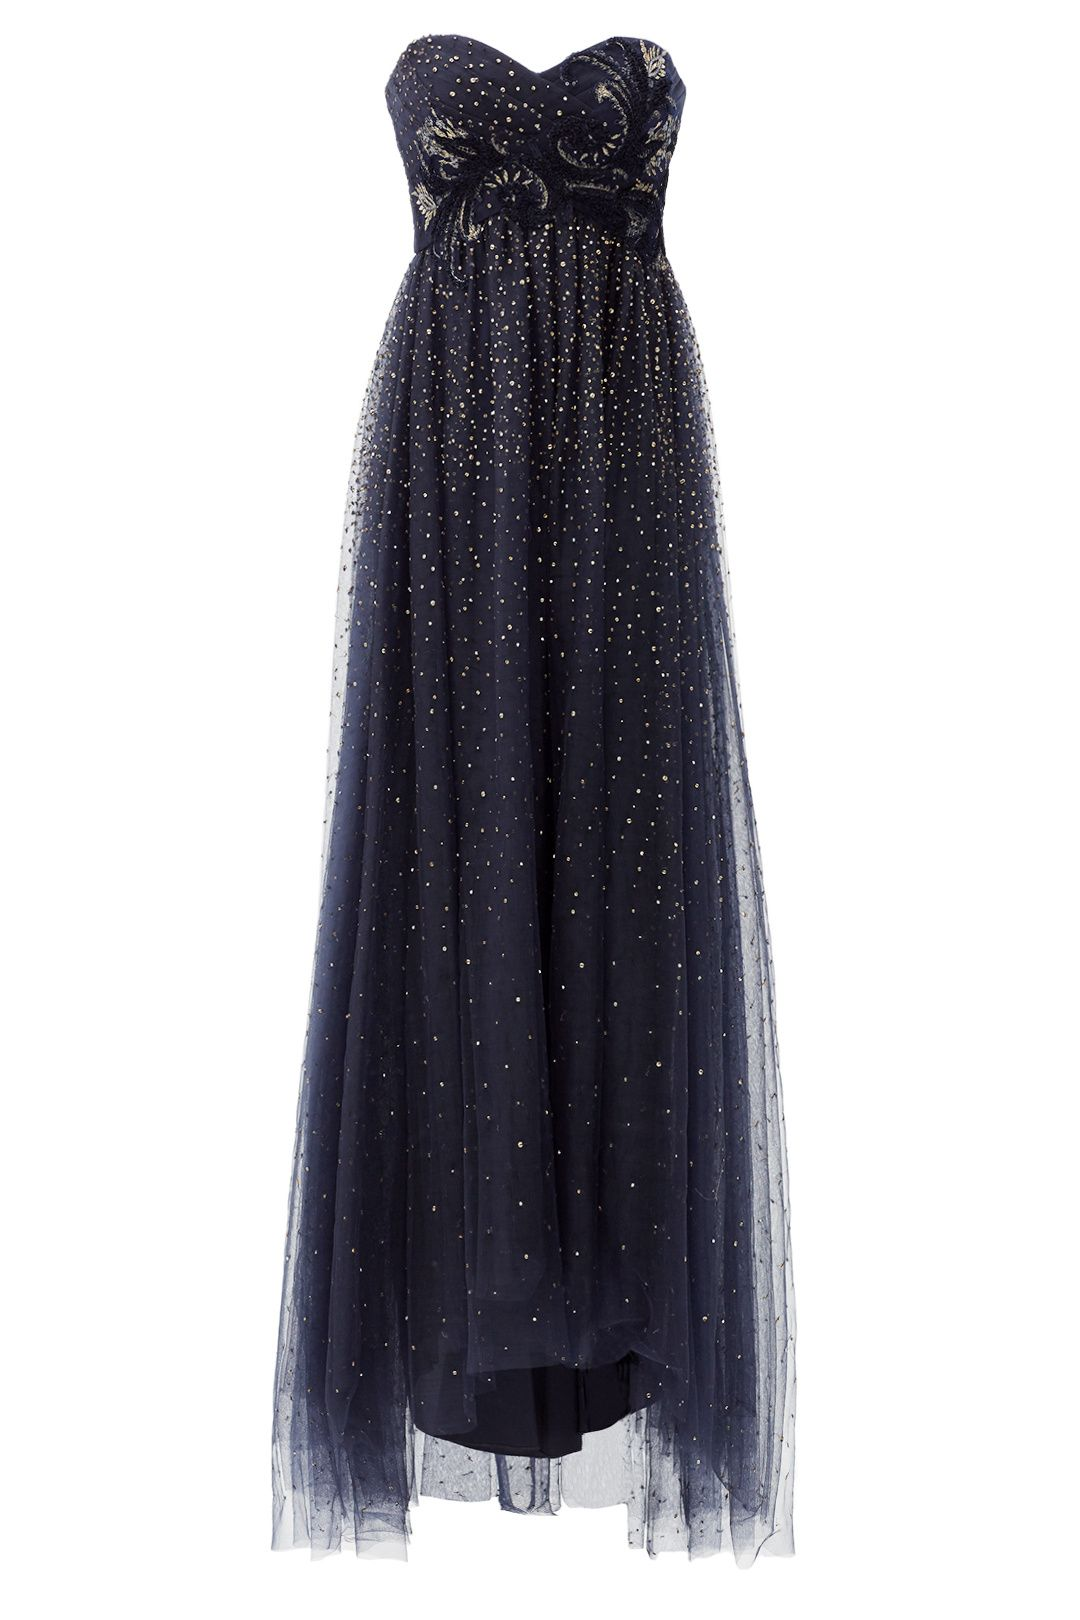 Starry Night Gown The Dress Pinterest Dresses Prom Dresses